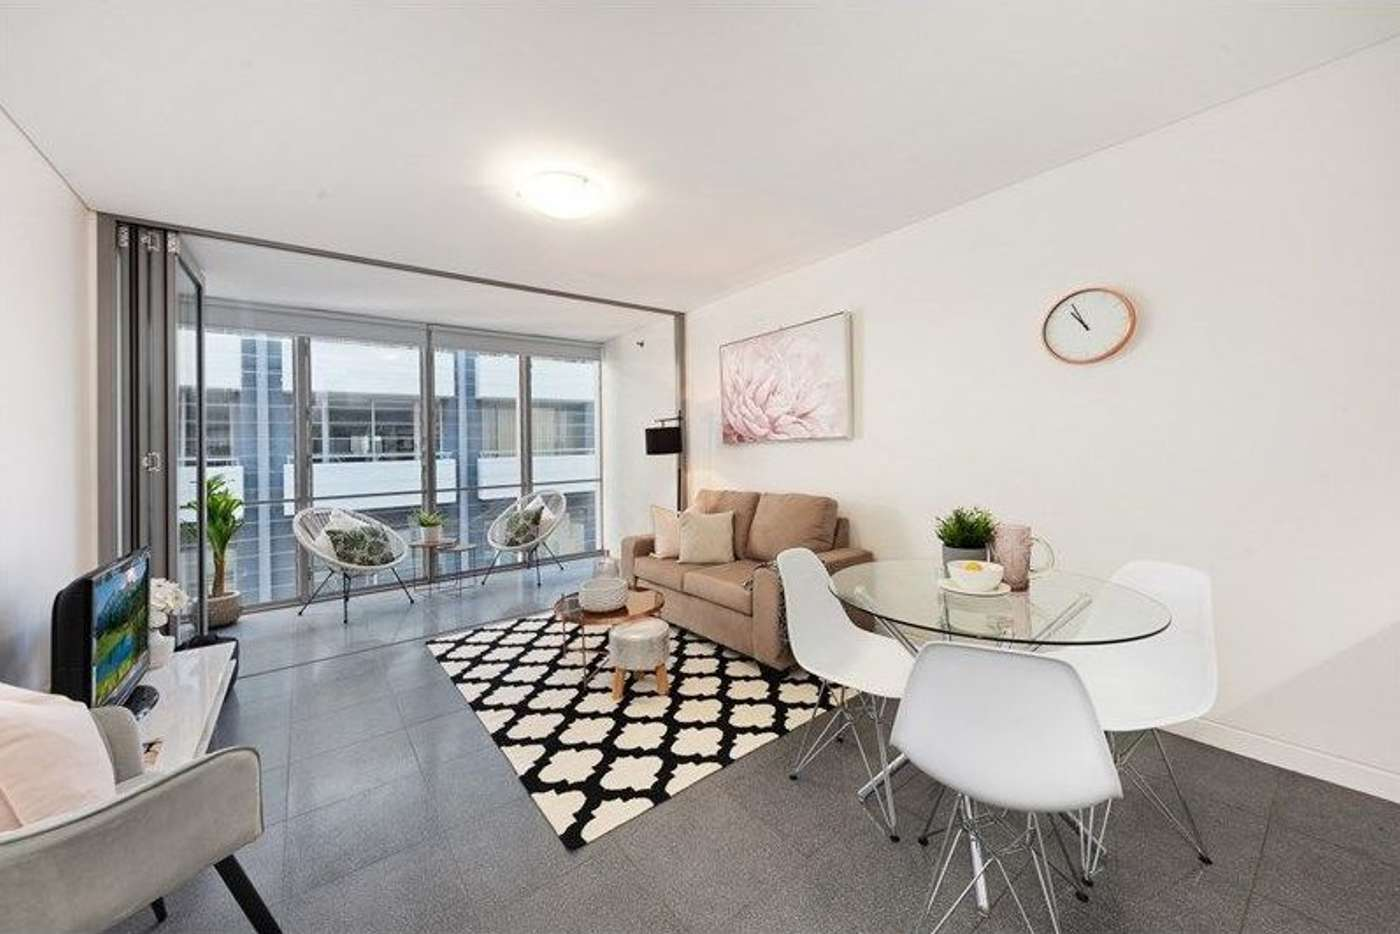 Main view of Homely apartment listing, 302/11 Chandos Street, St Leonards NSW 2065